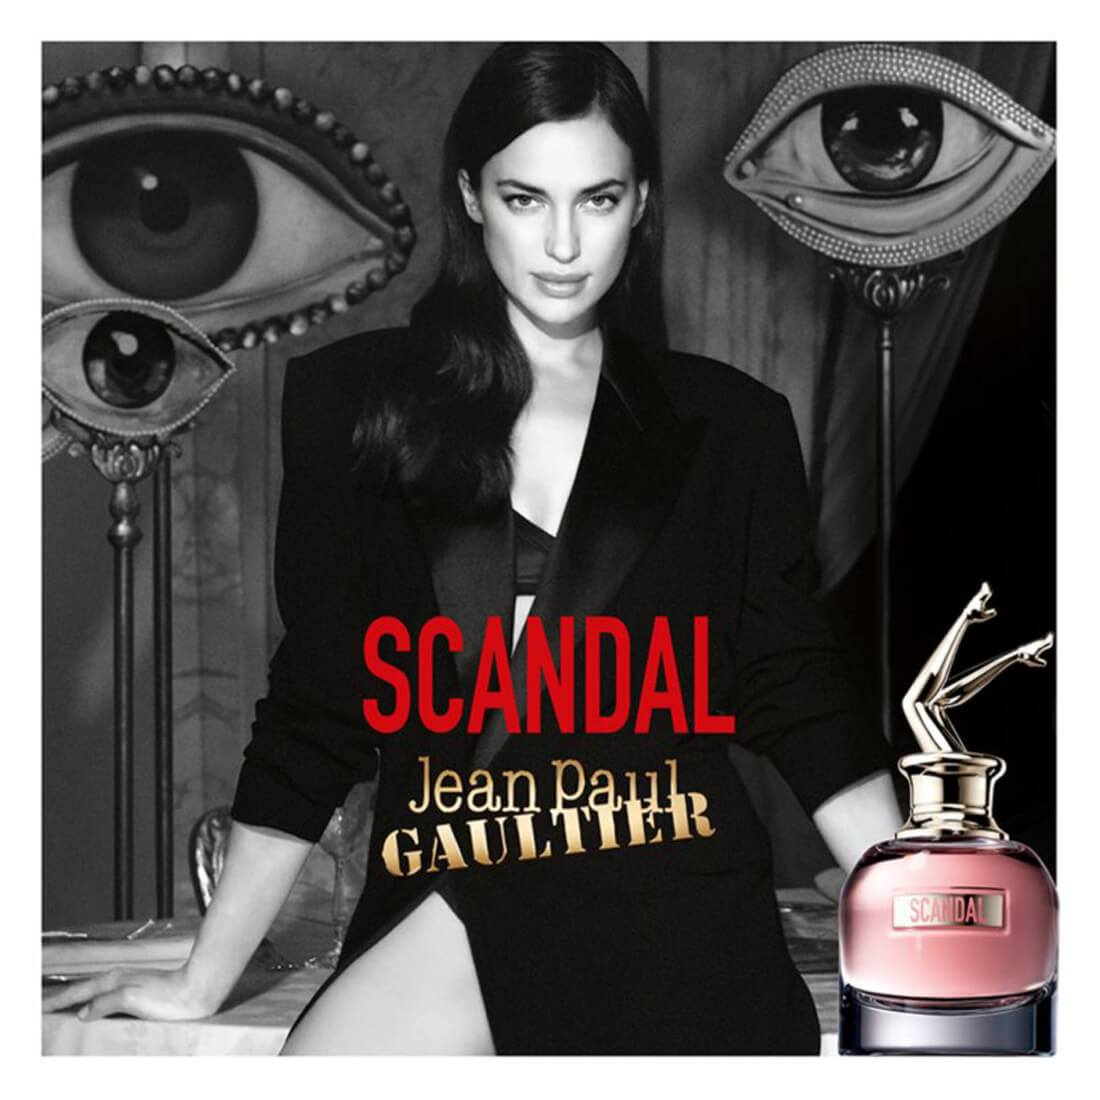 Jean Paul Gaultier Scandal Eau De Perfume For Women - 80ml